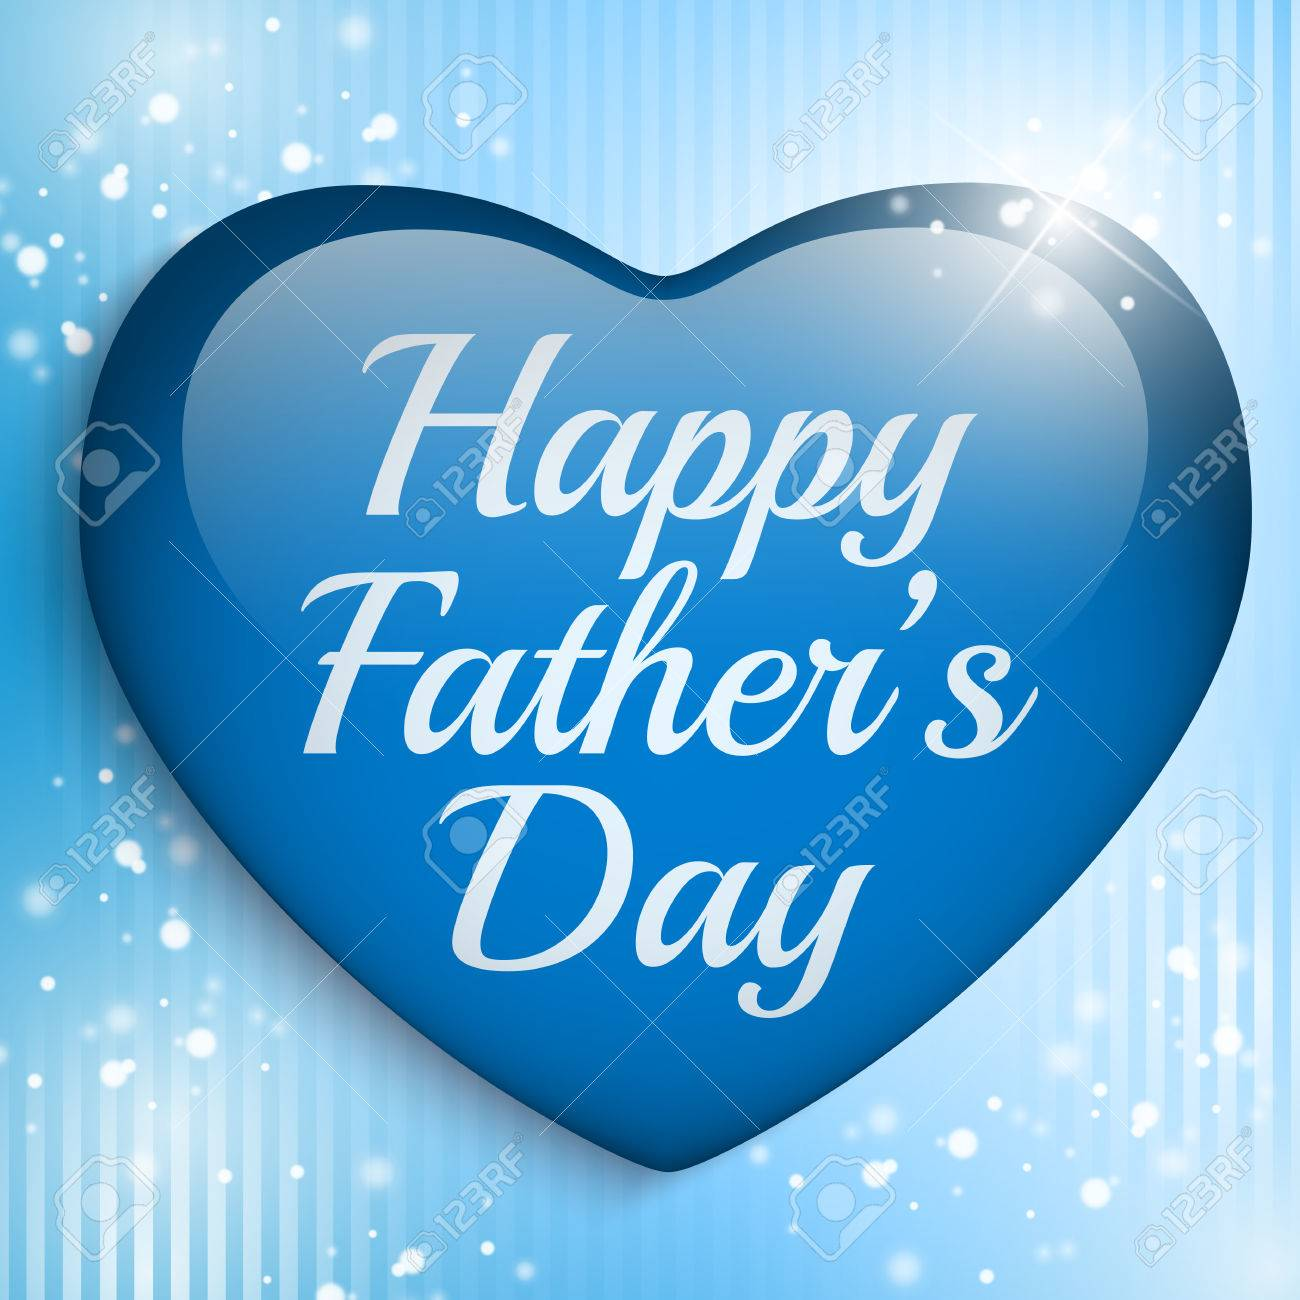 17 240 happy fathers day cliparts stock vector and royalty free